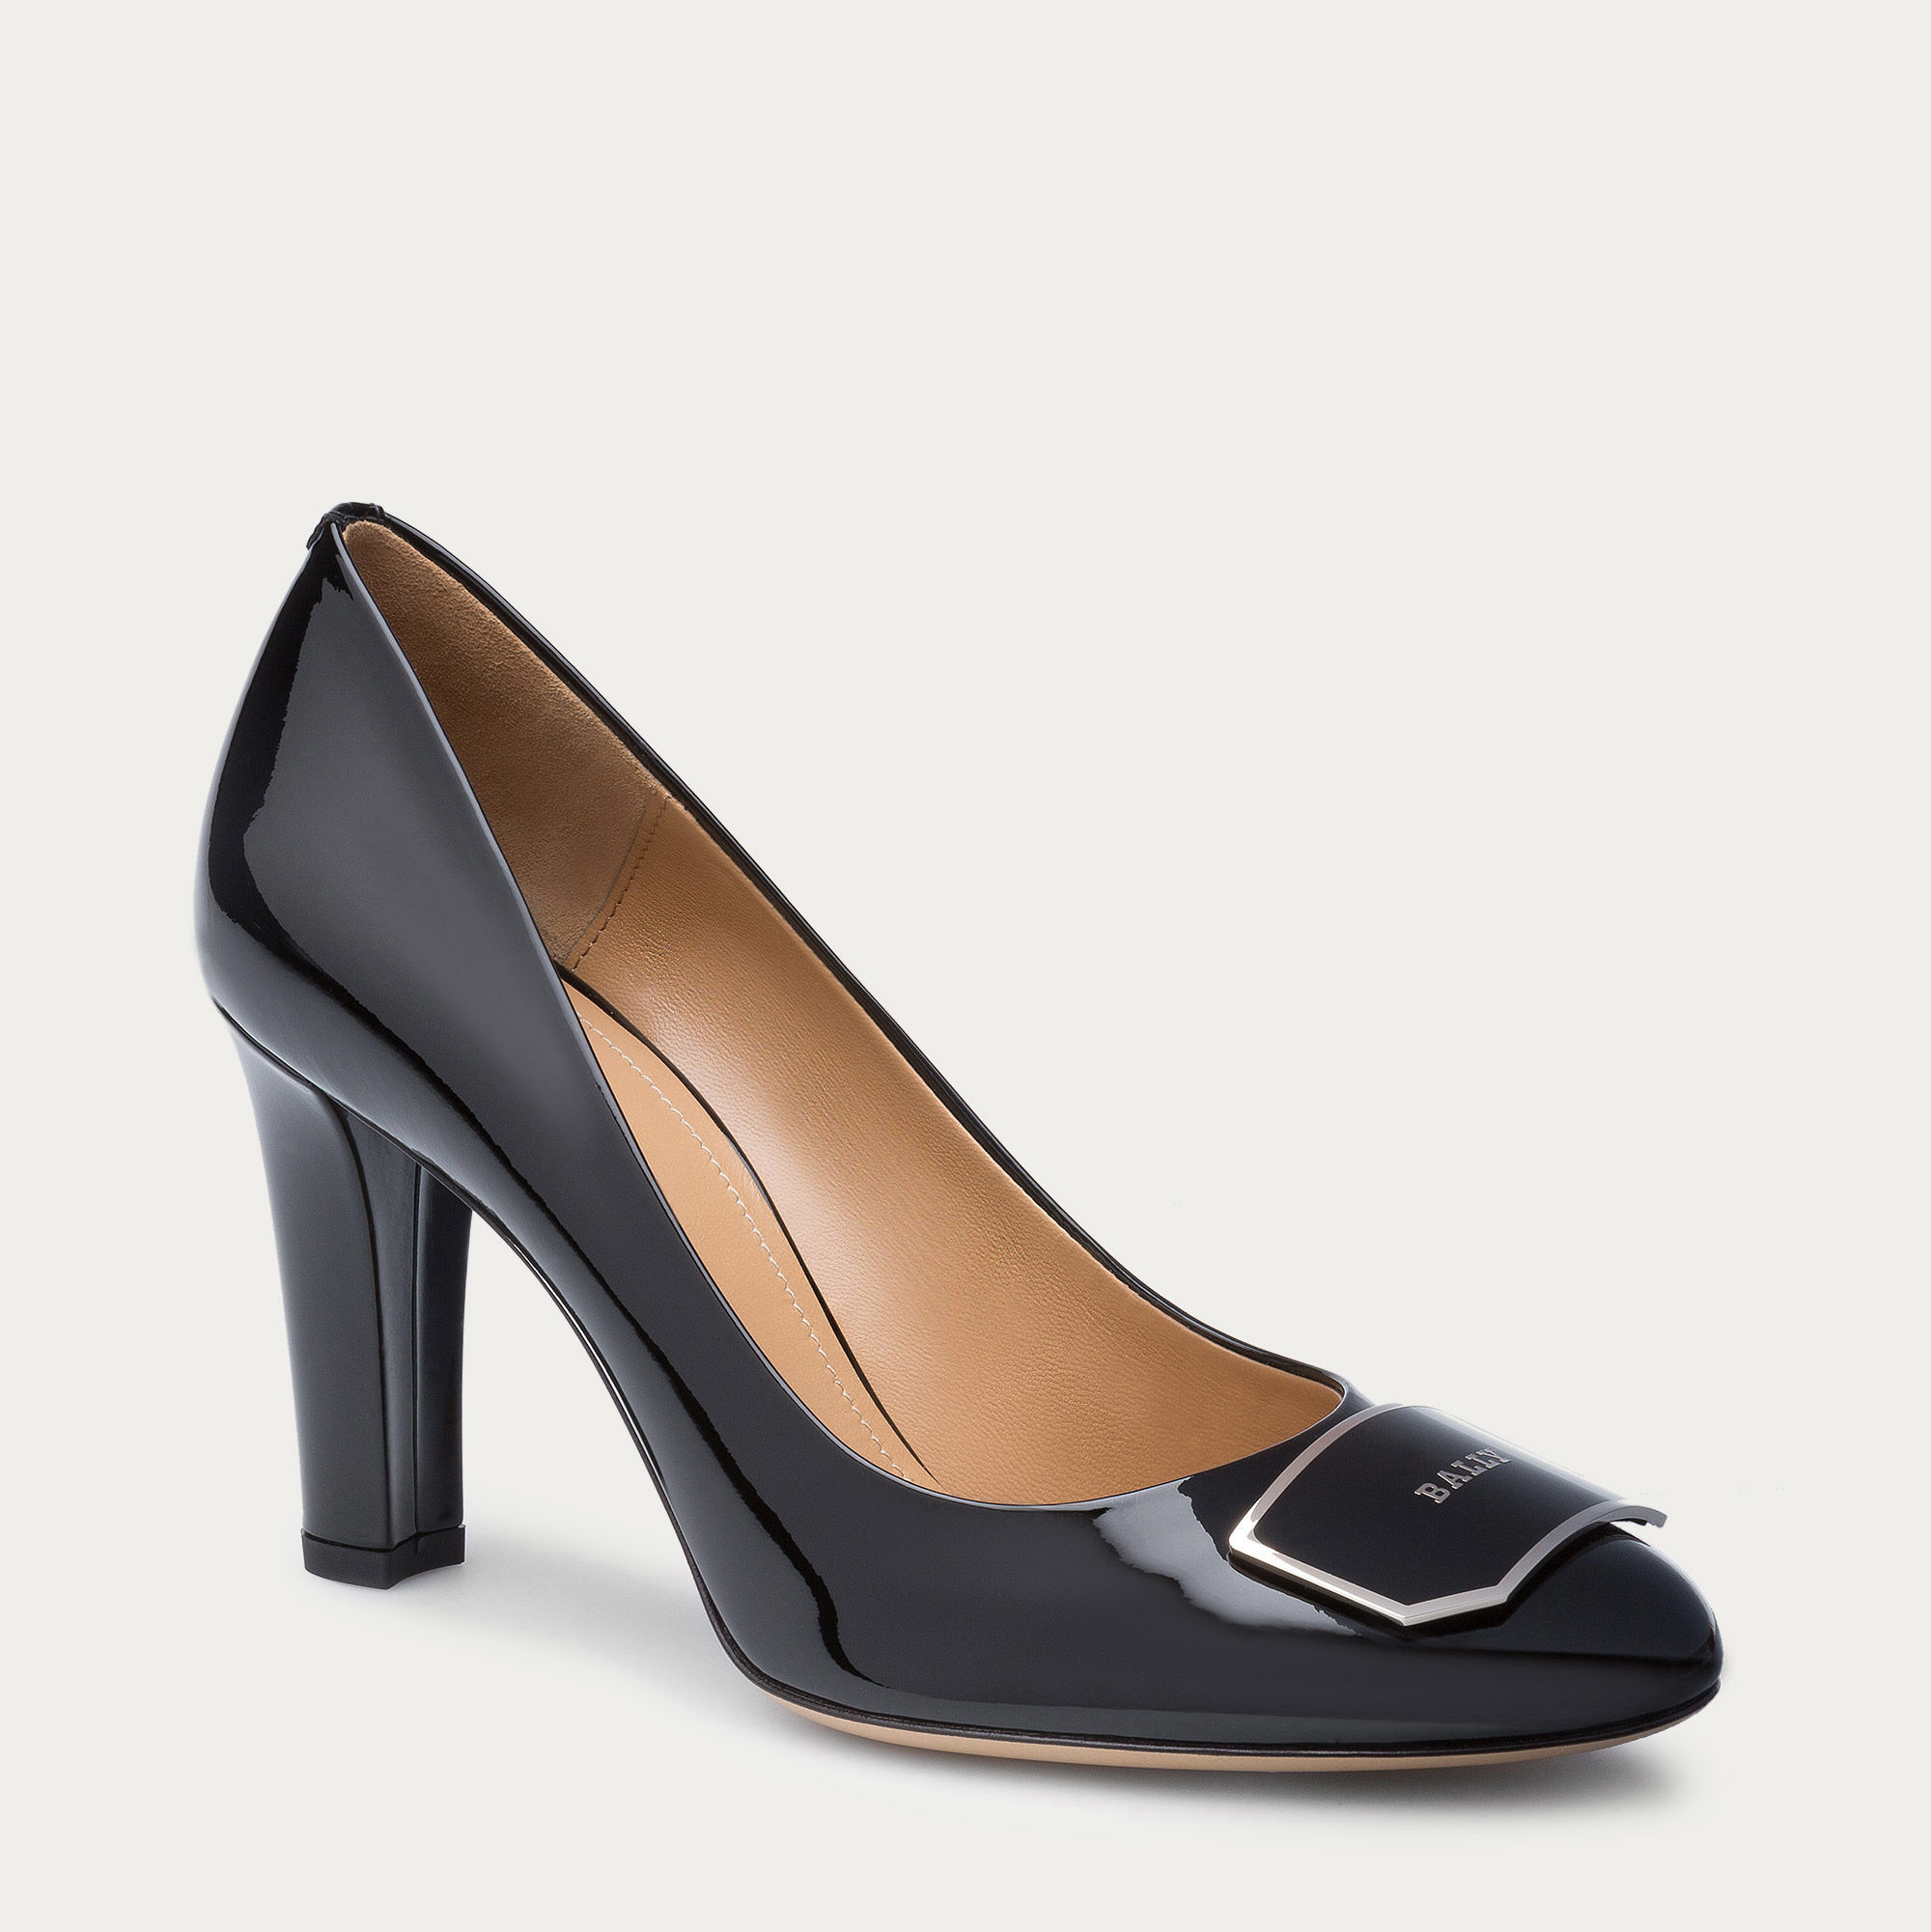 bally harmoni s patent leather heel in black in